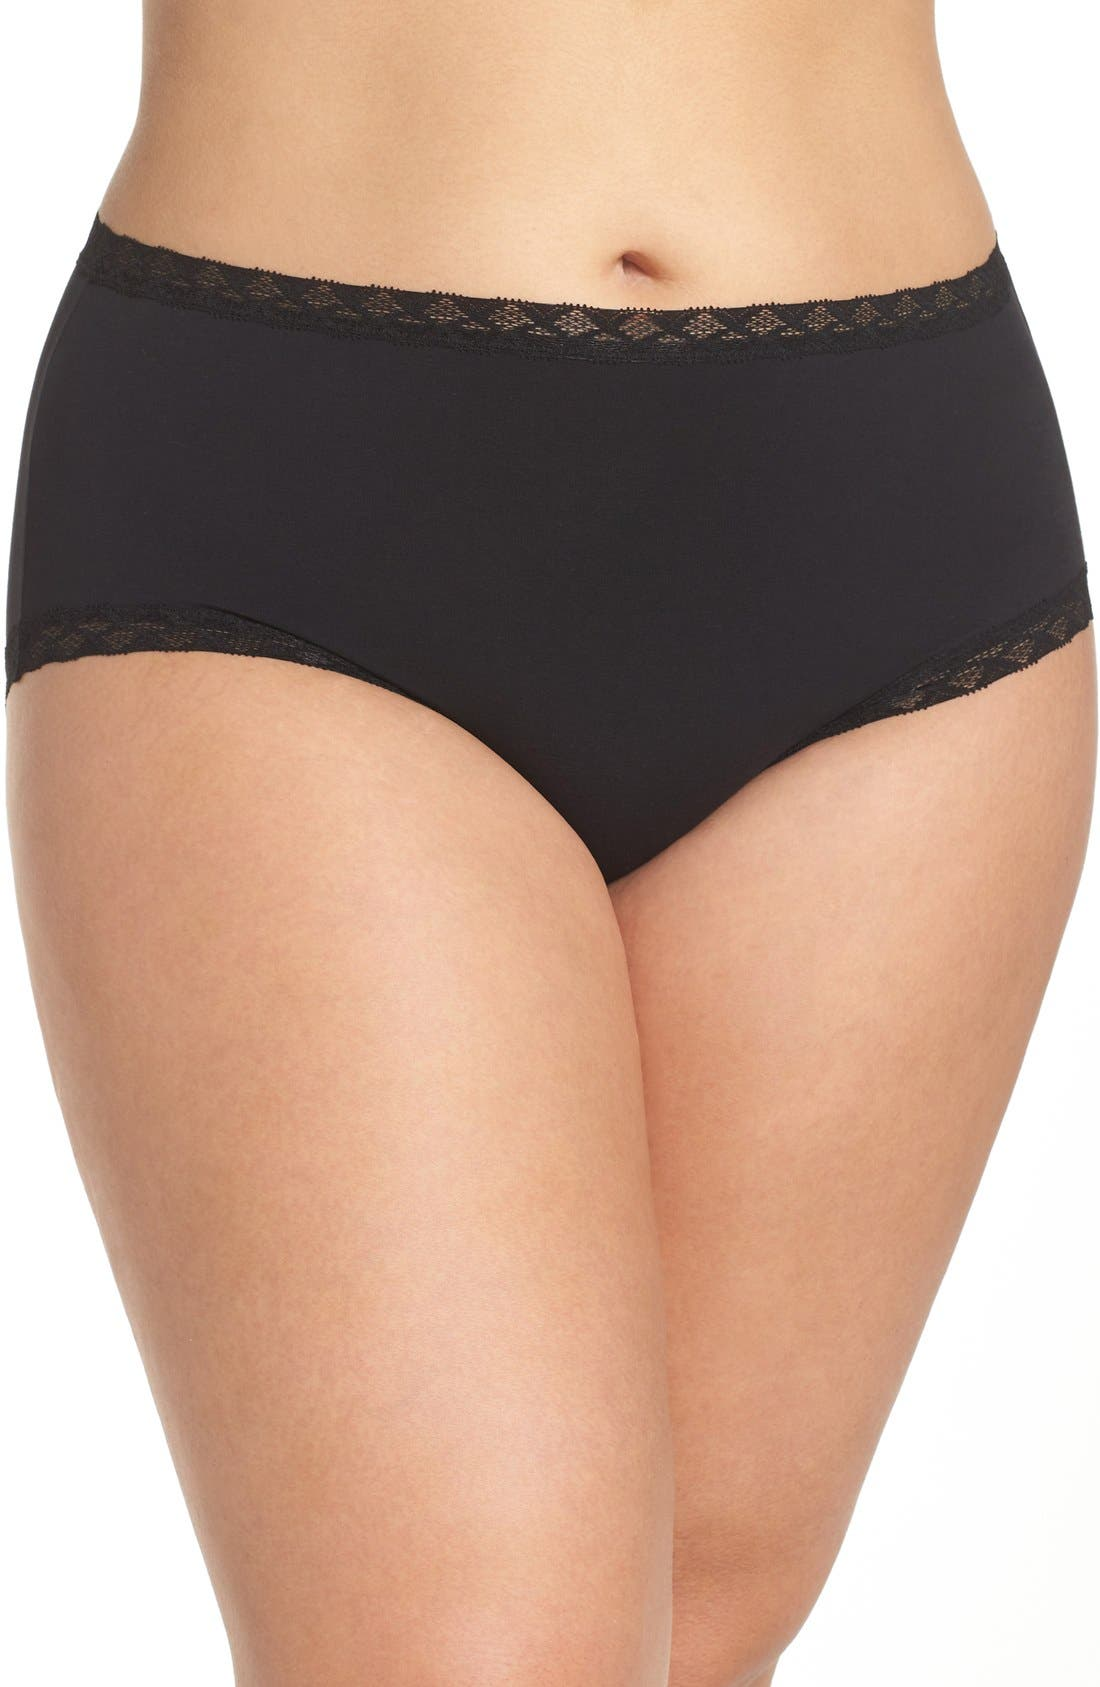 Bliss Cotton Full Brief,                             Main thumbnail 1, color,                             BLACK